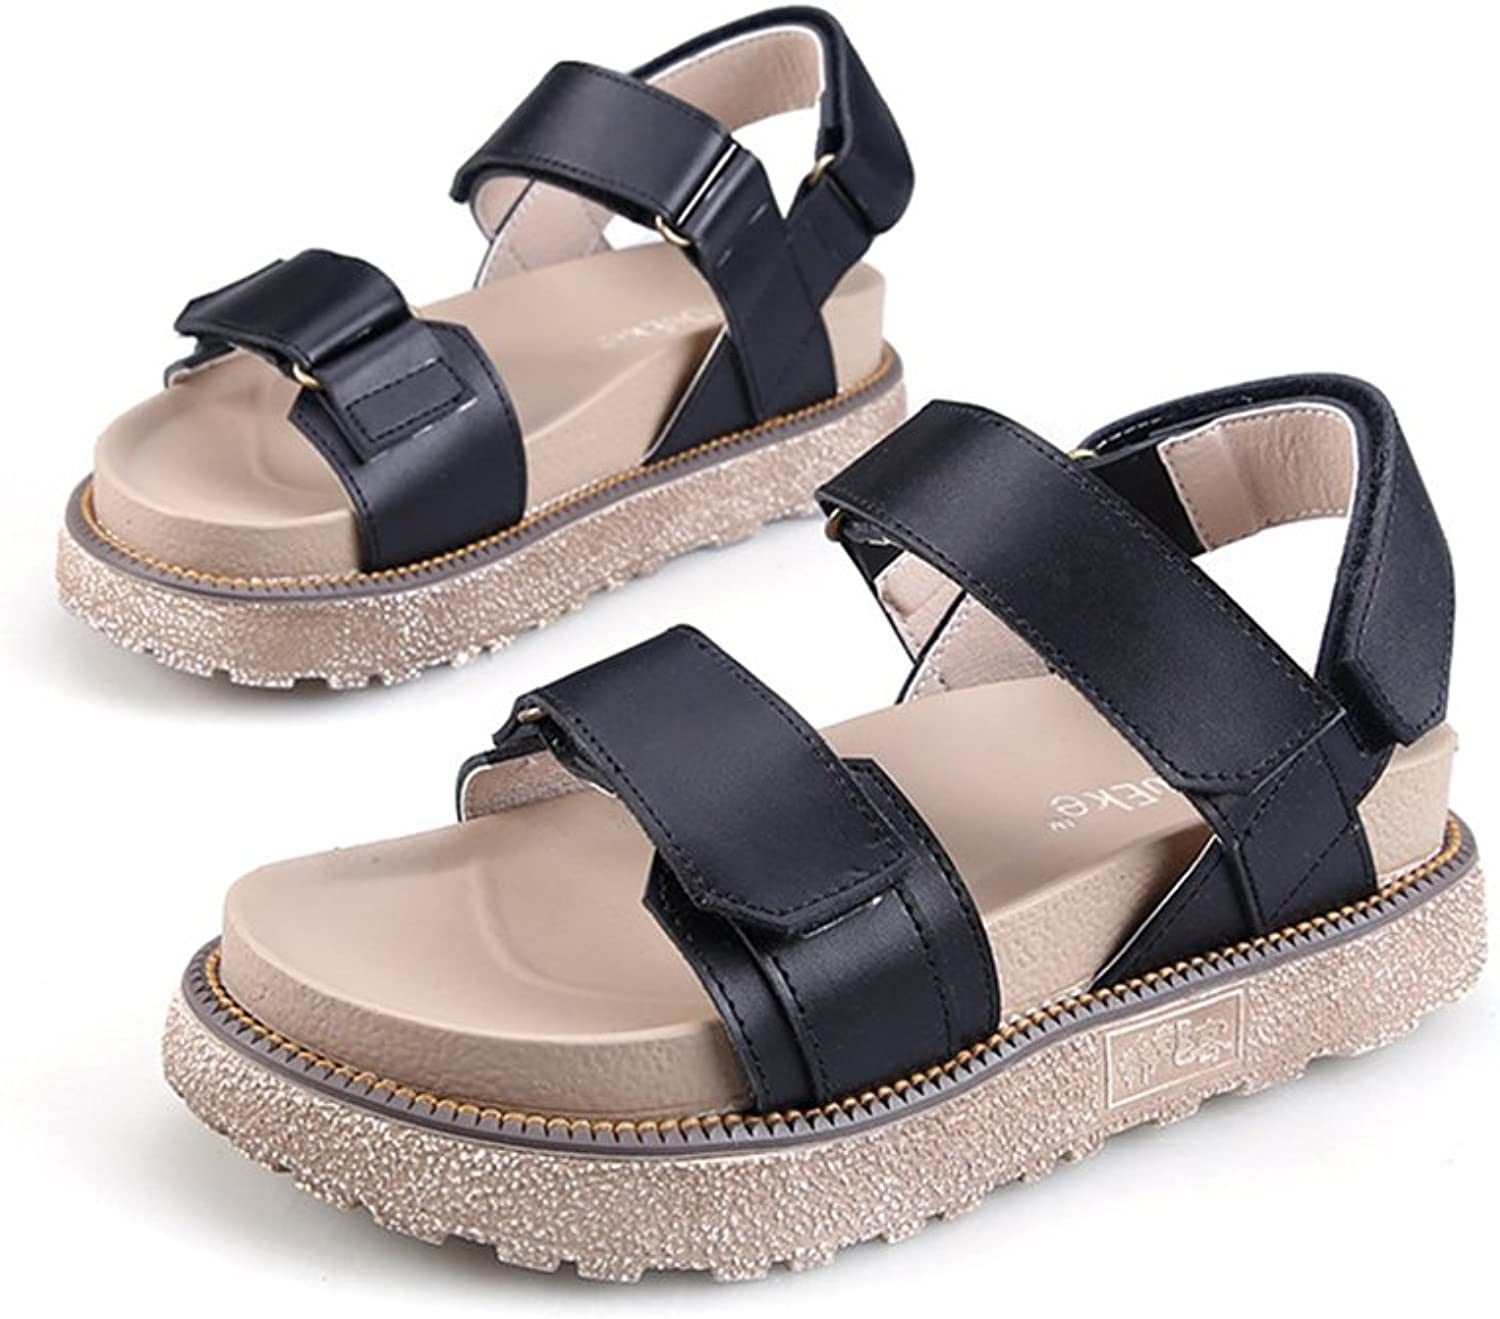 Reiny Women's Summer Casual Leather Anti-Skid Outdoor Sandals